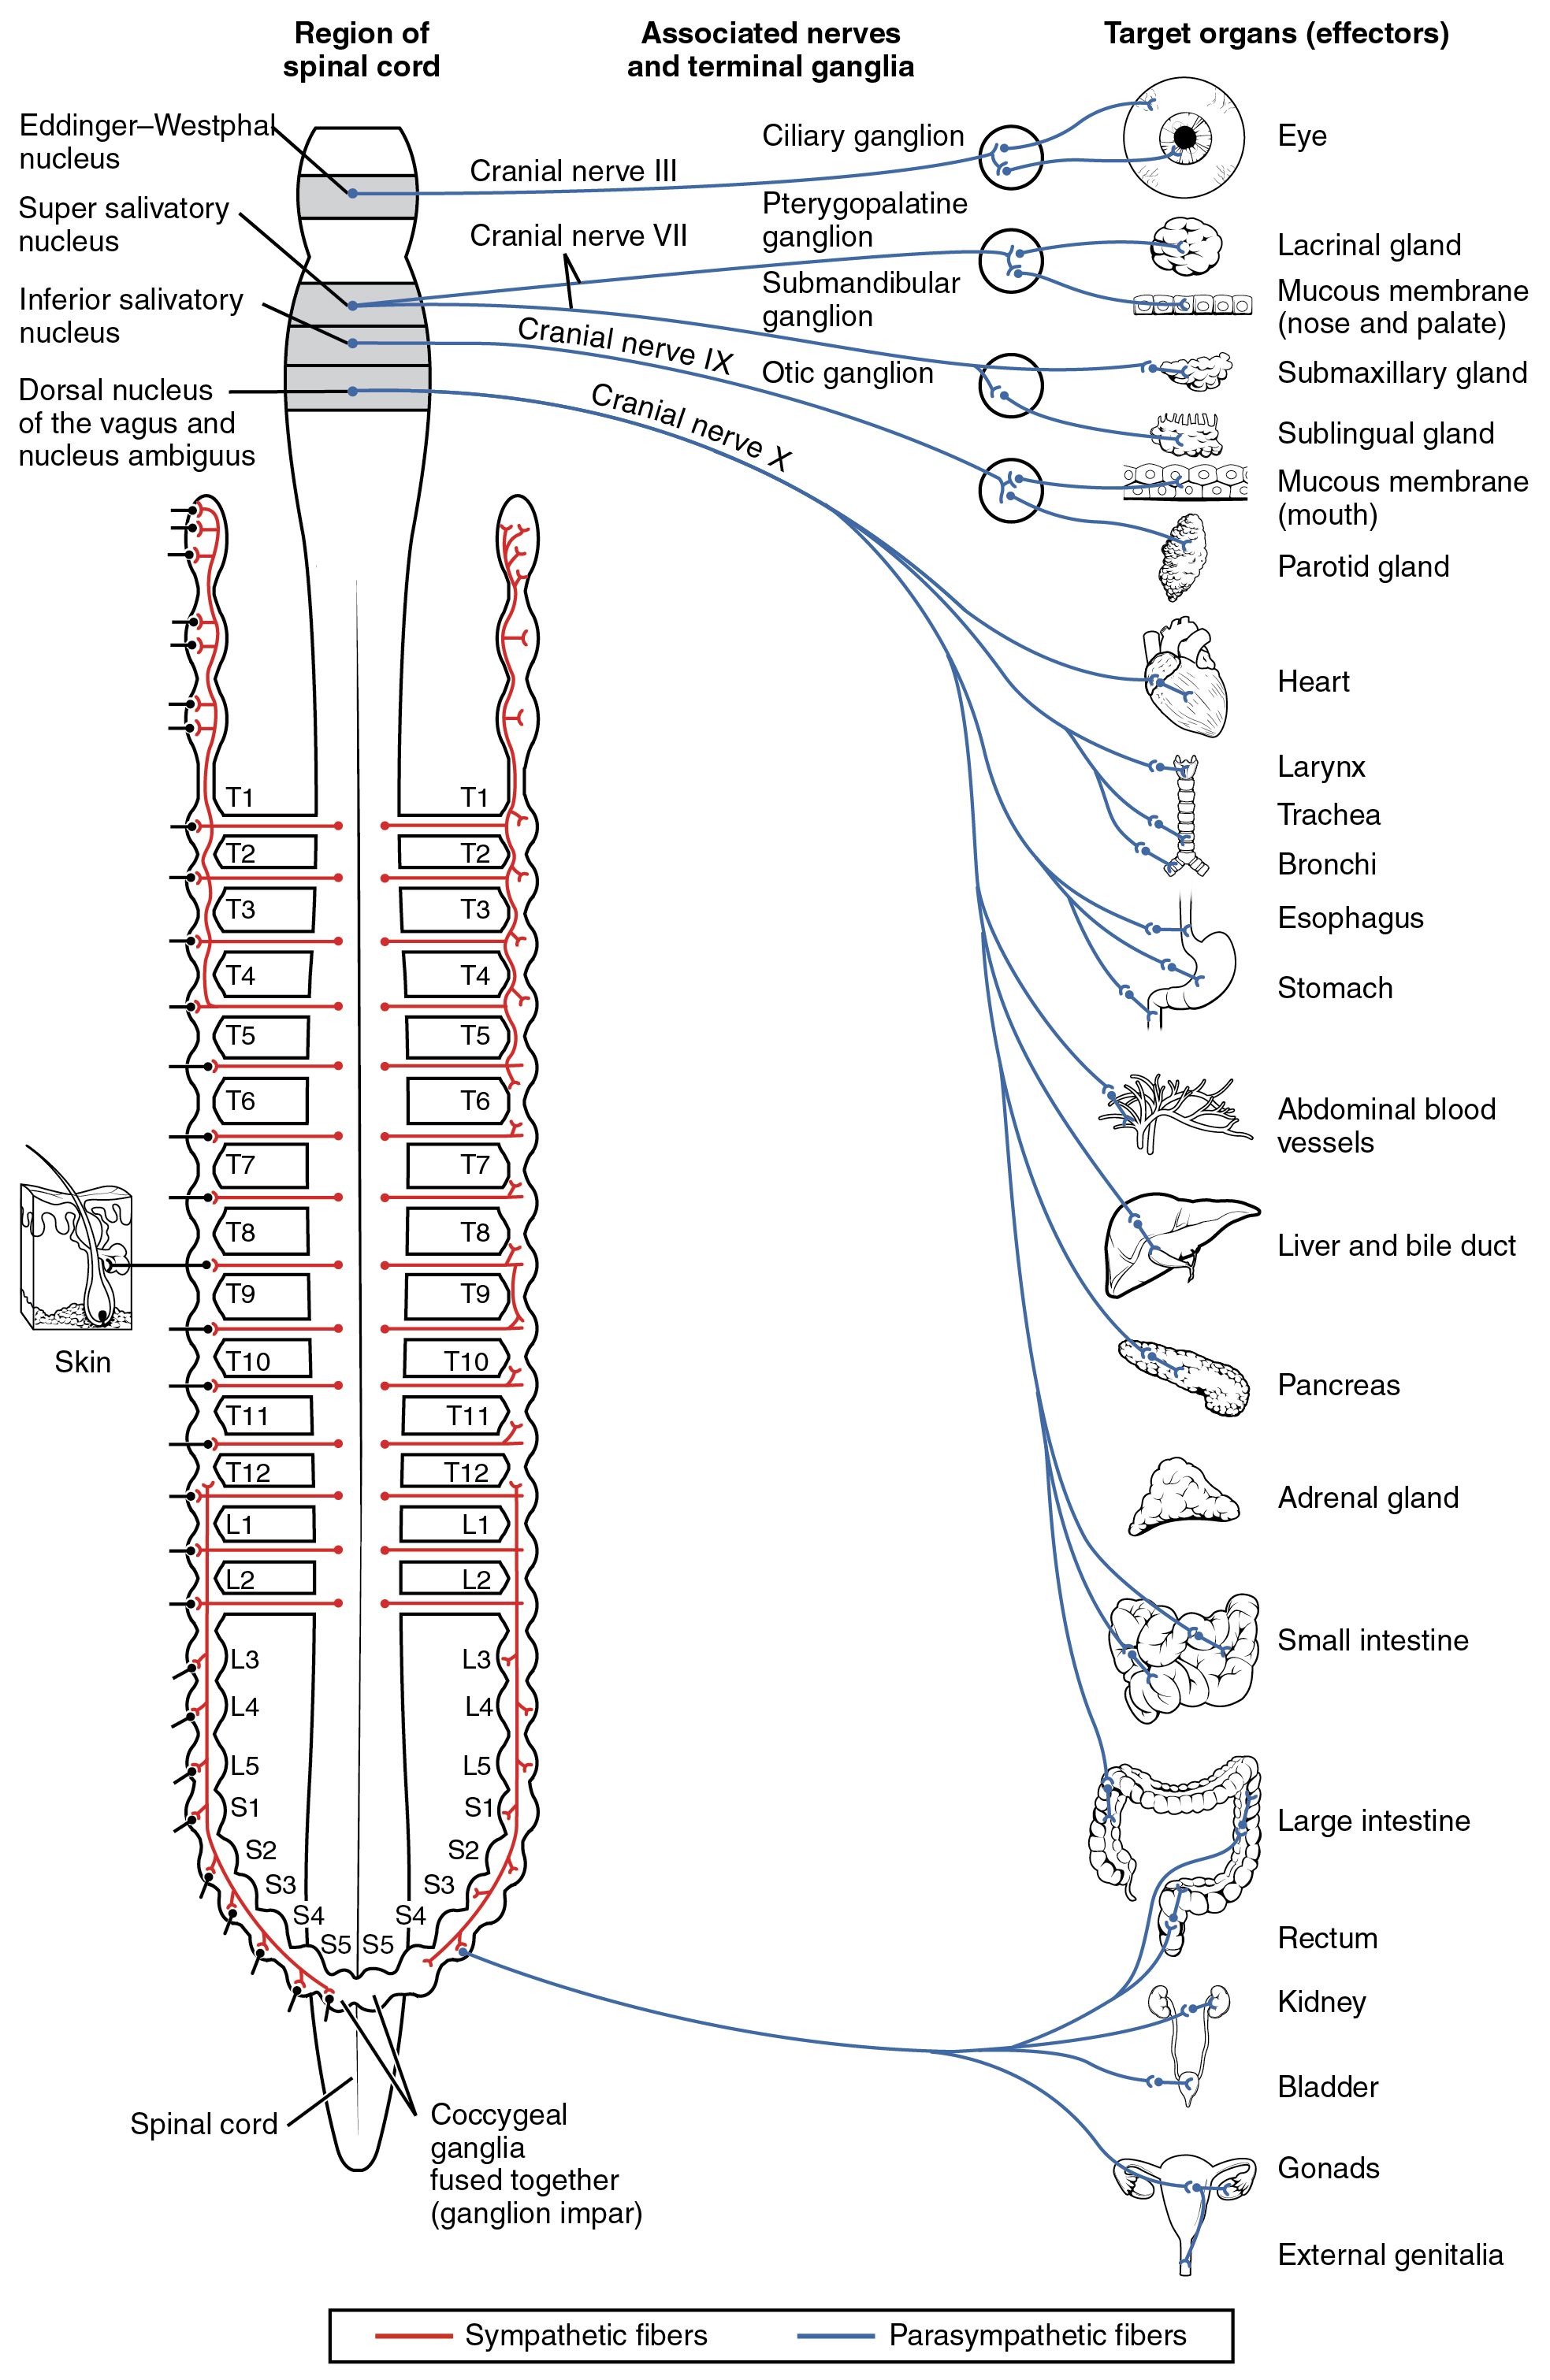 This diagram shows the spinal cord and has different central nerves emerging from it. The central nerves target different effector organs that are listed on the right.